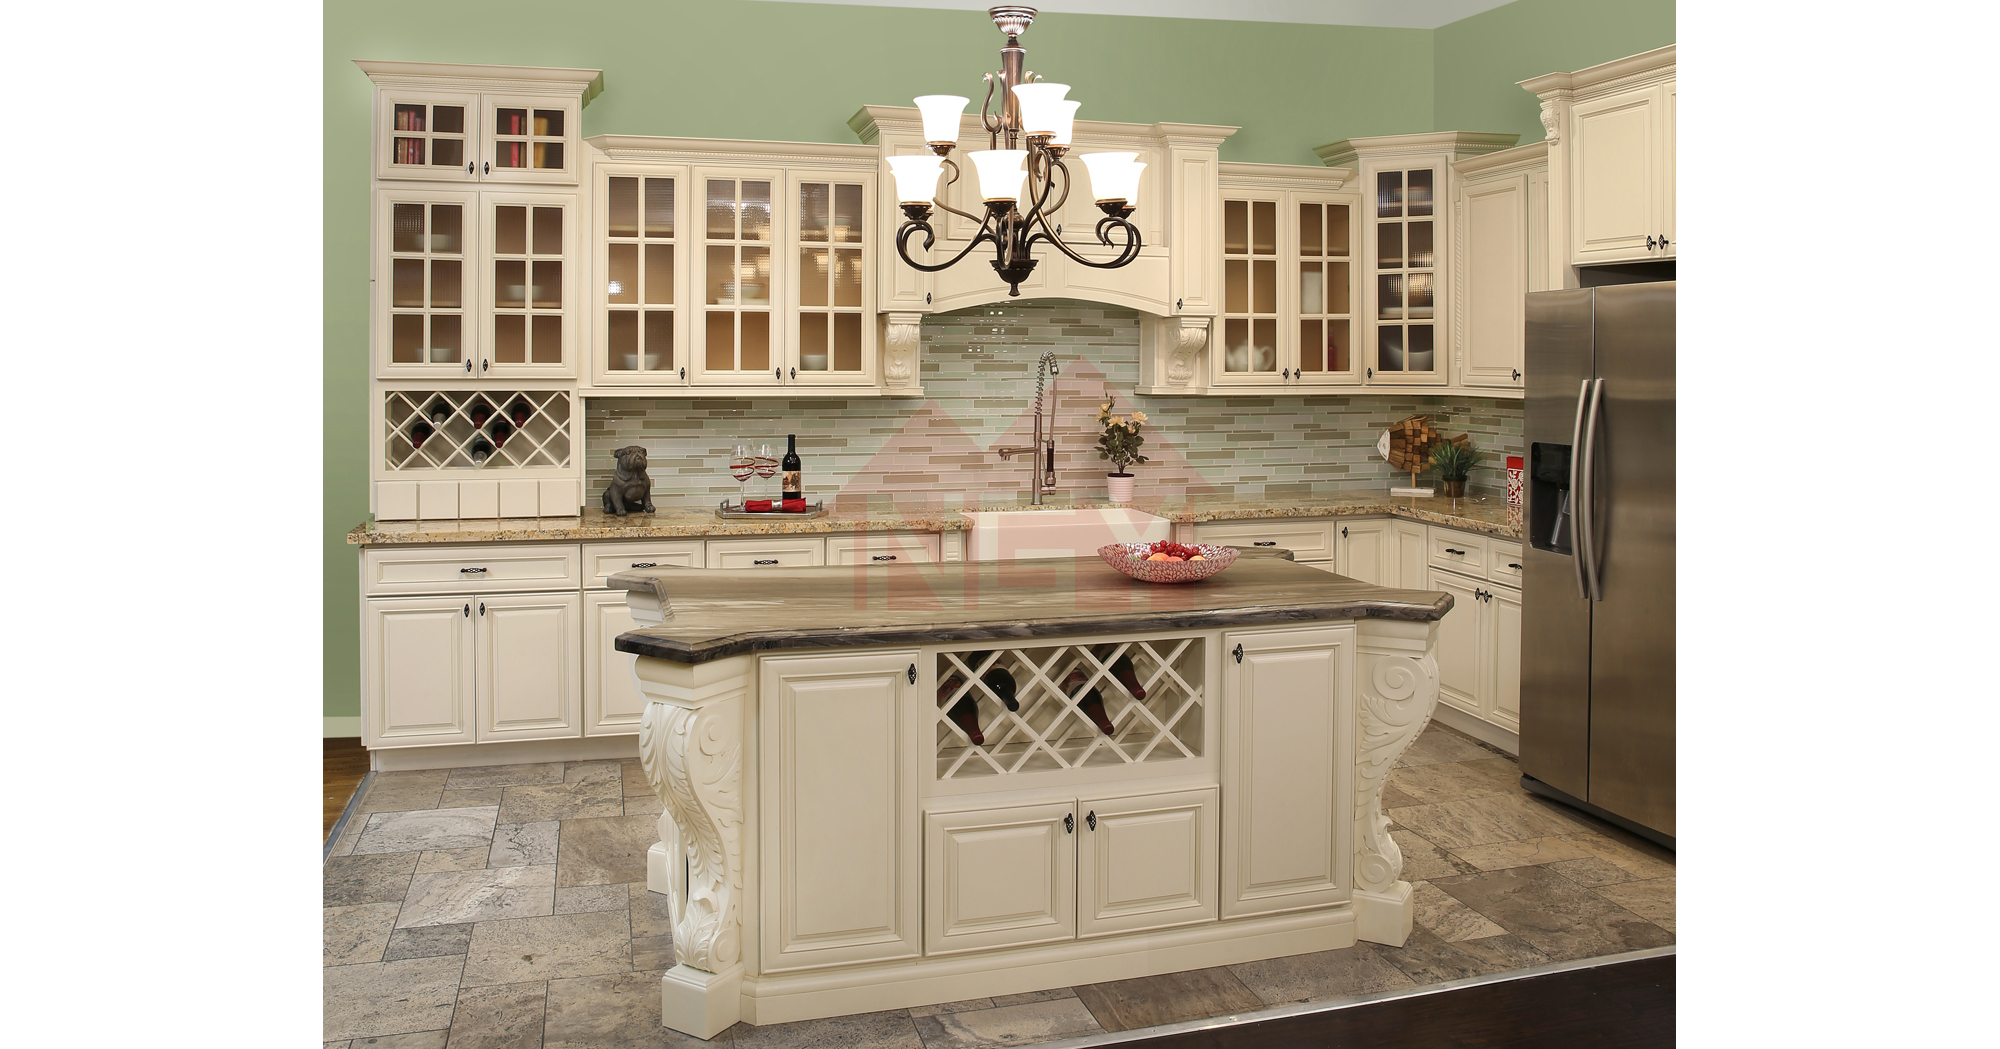 Ngy Stones Amp Cabinets Inc All Products Kitchen